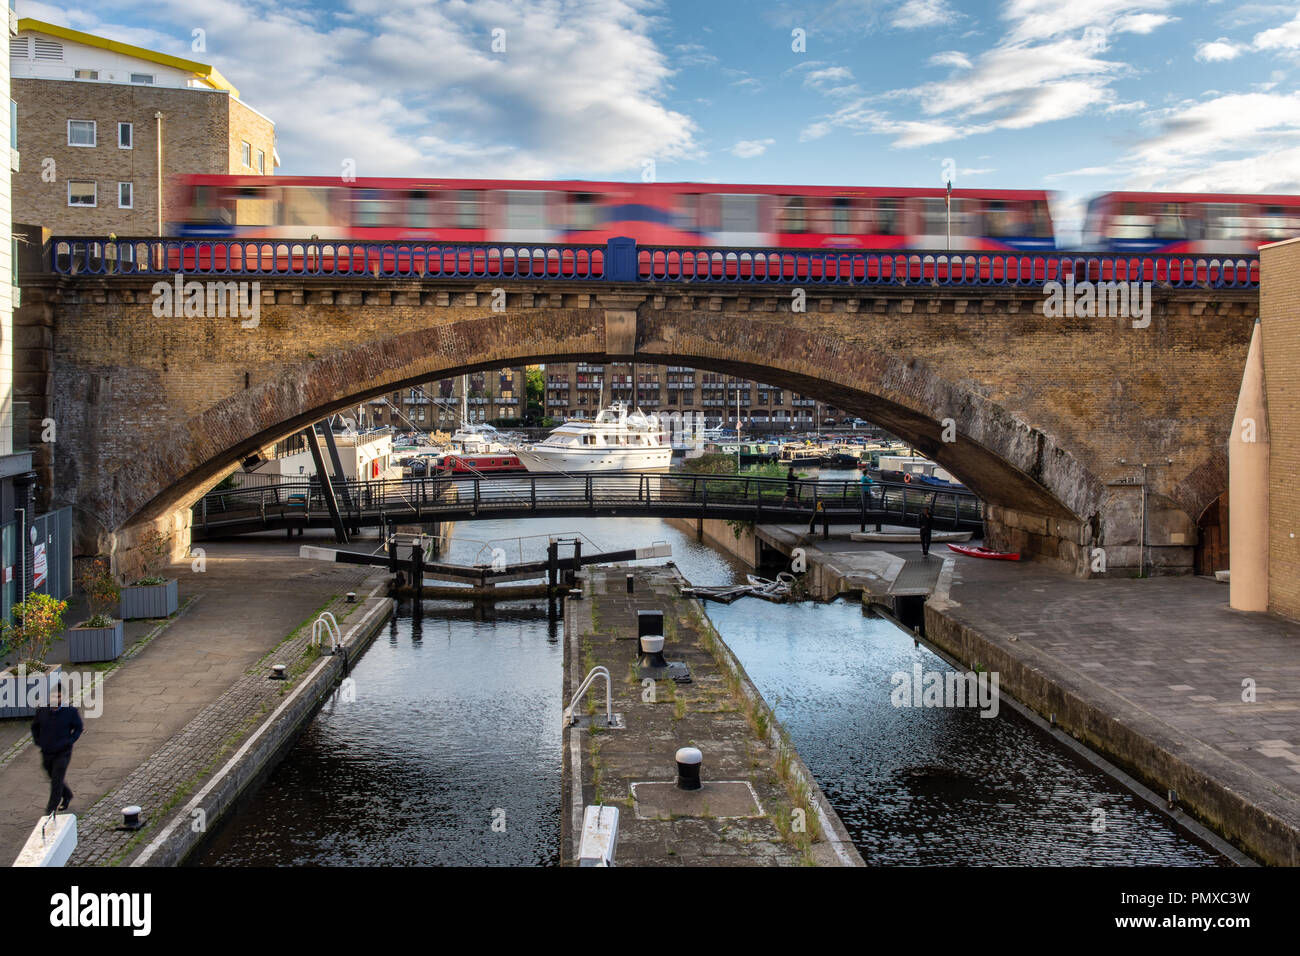 London, England, UK - September 14, 2018: A Docklands Light Railway train forms a blur as it speeds across a viaduct over the Regent's Canal at Limeho - Stock Image